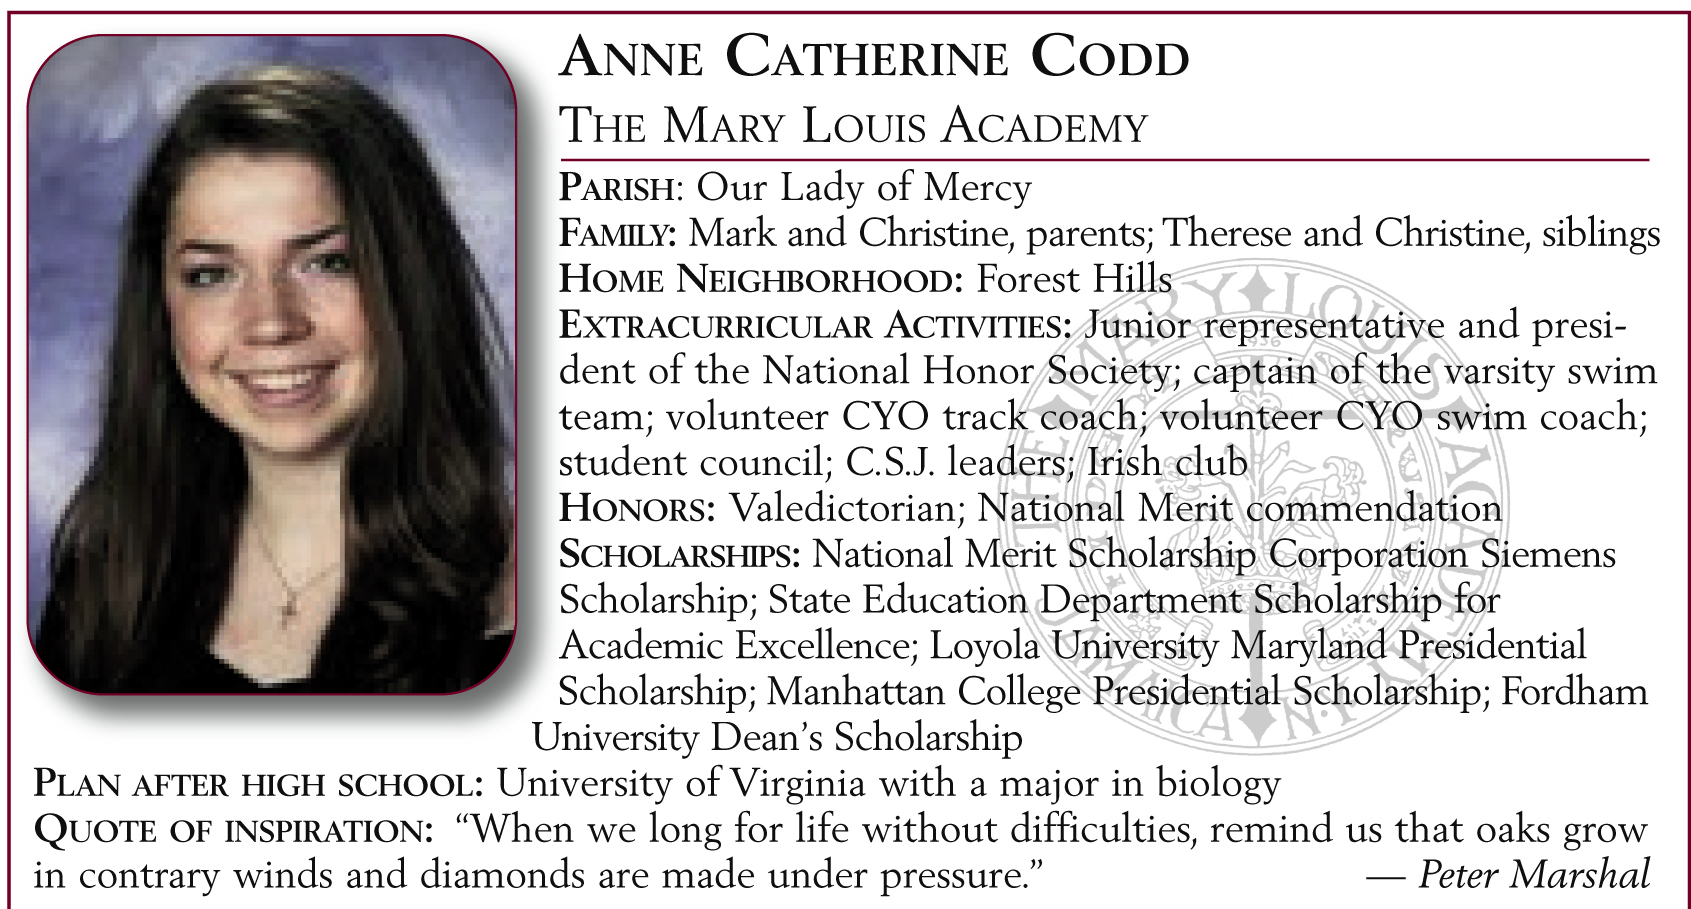 Anne Catherine Codd, The Mary Louis Academy